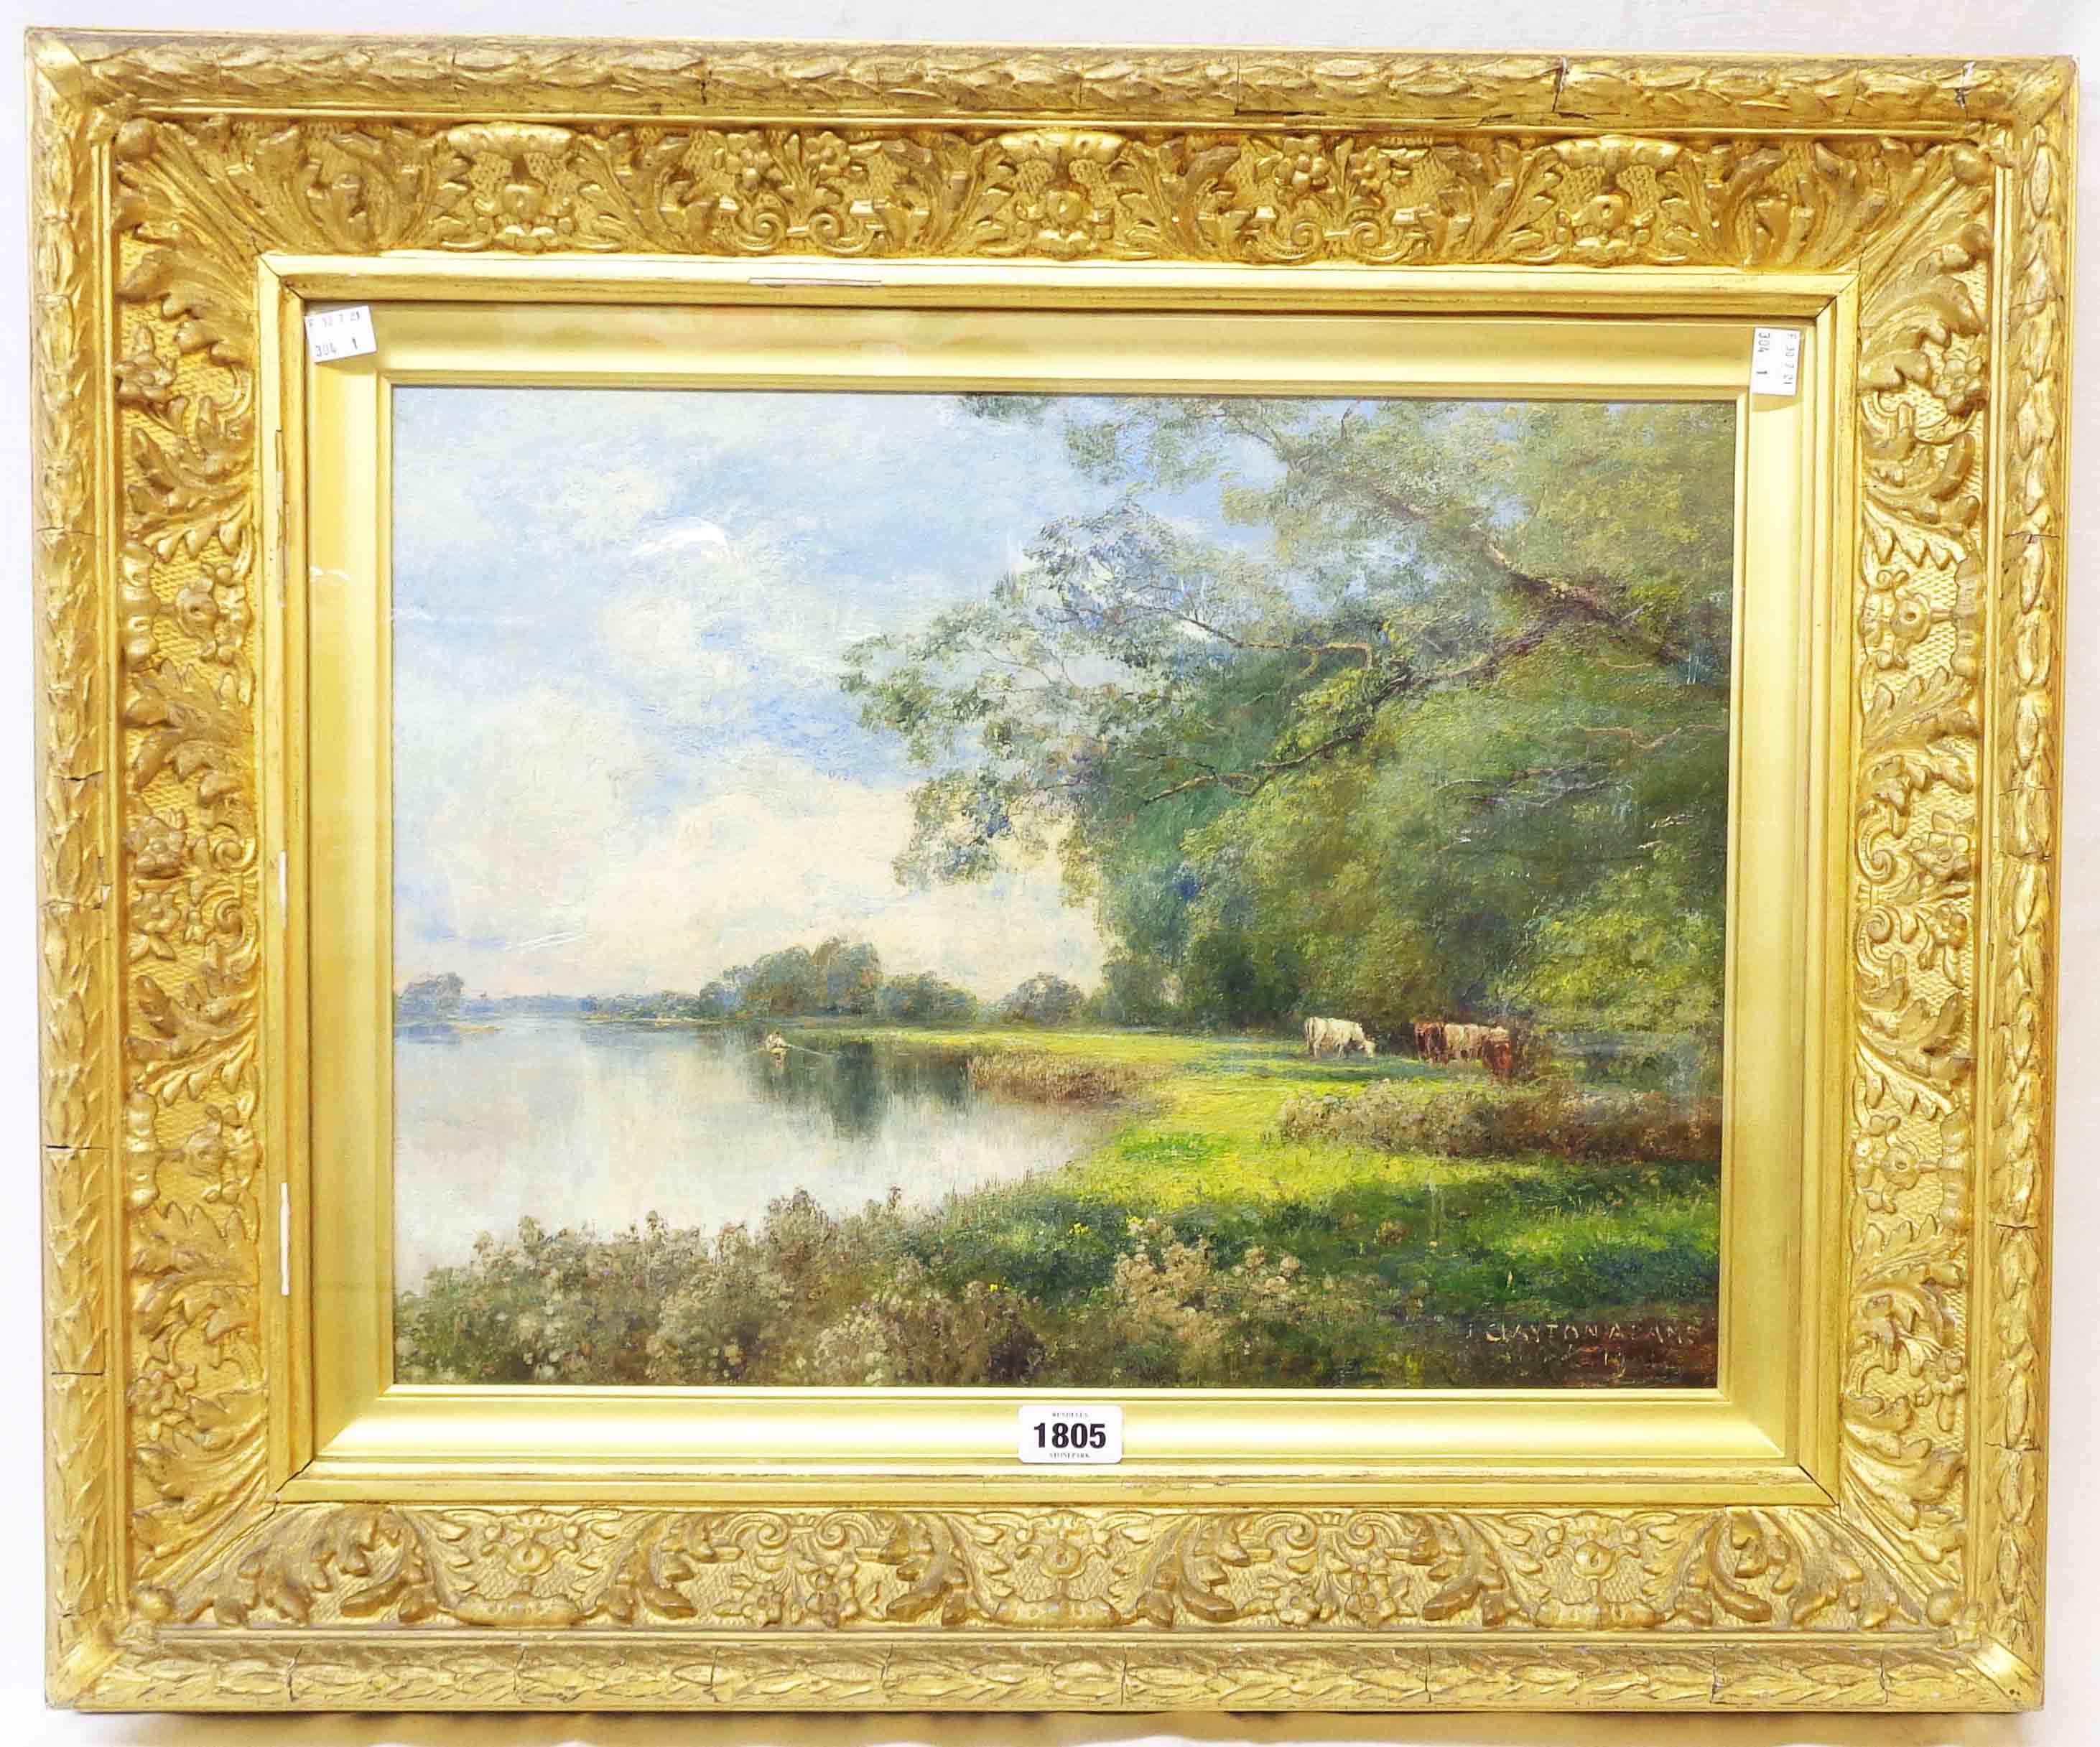 John Clayton Adams: an ornate gilt gesso framed oil on canvas under glass, depicting cattle - Image 2 of 2